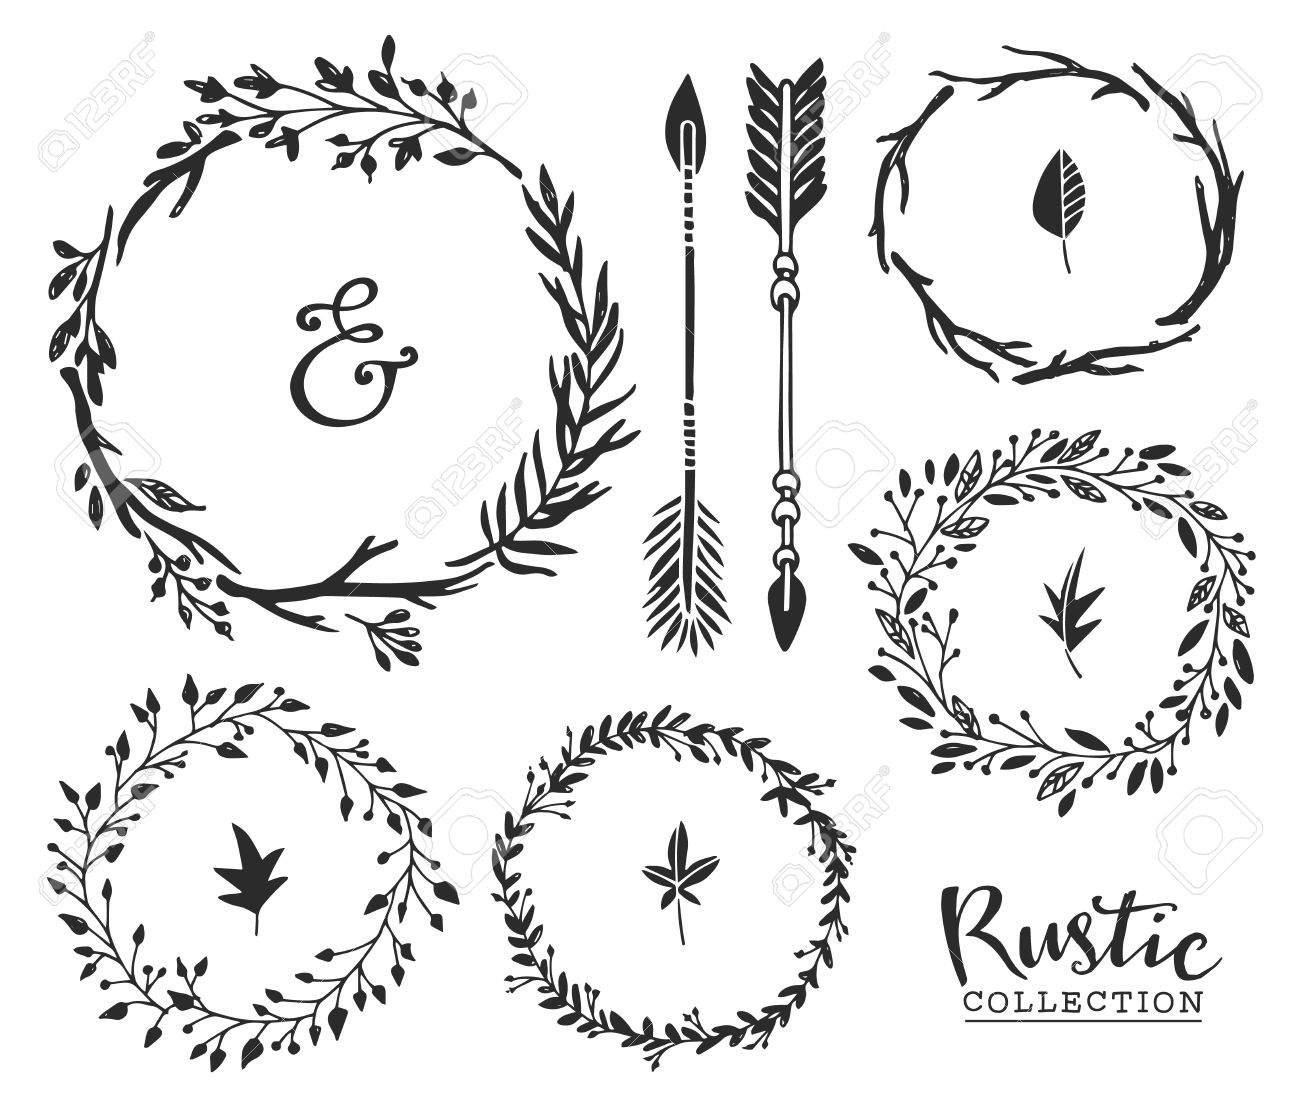 Hand drawn vintage ampersand, arrows and wreaths. Rustic.